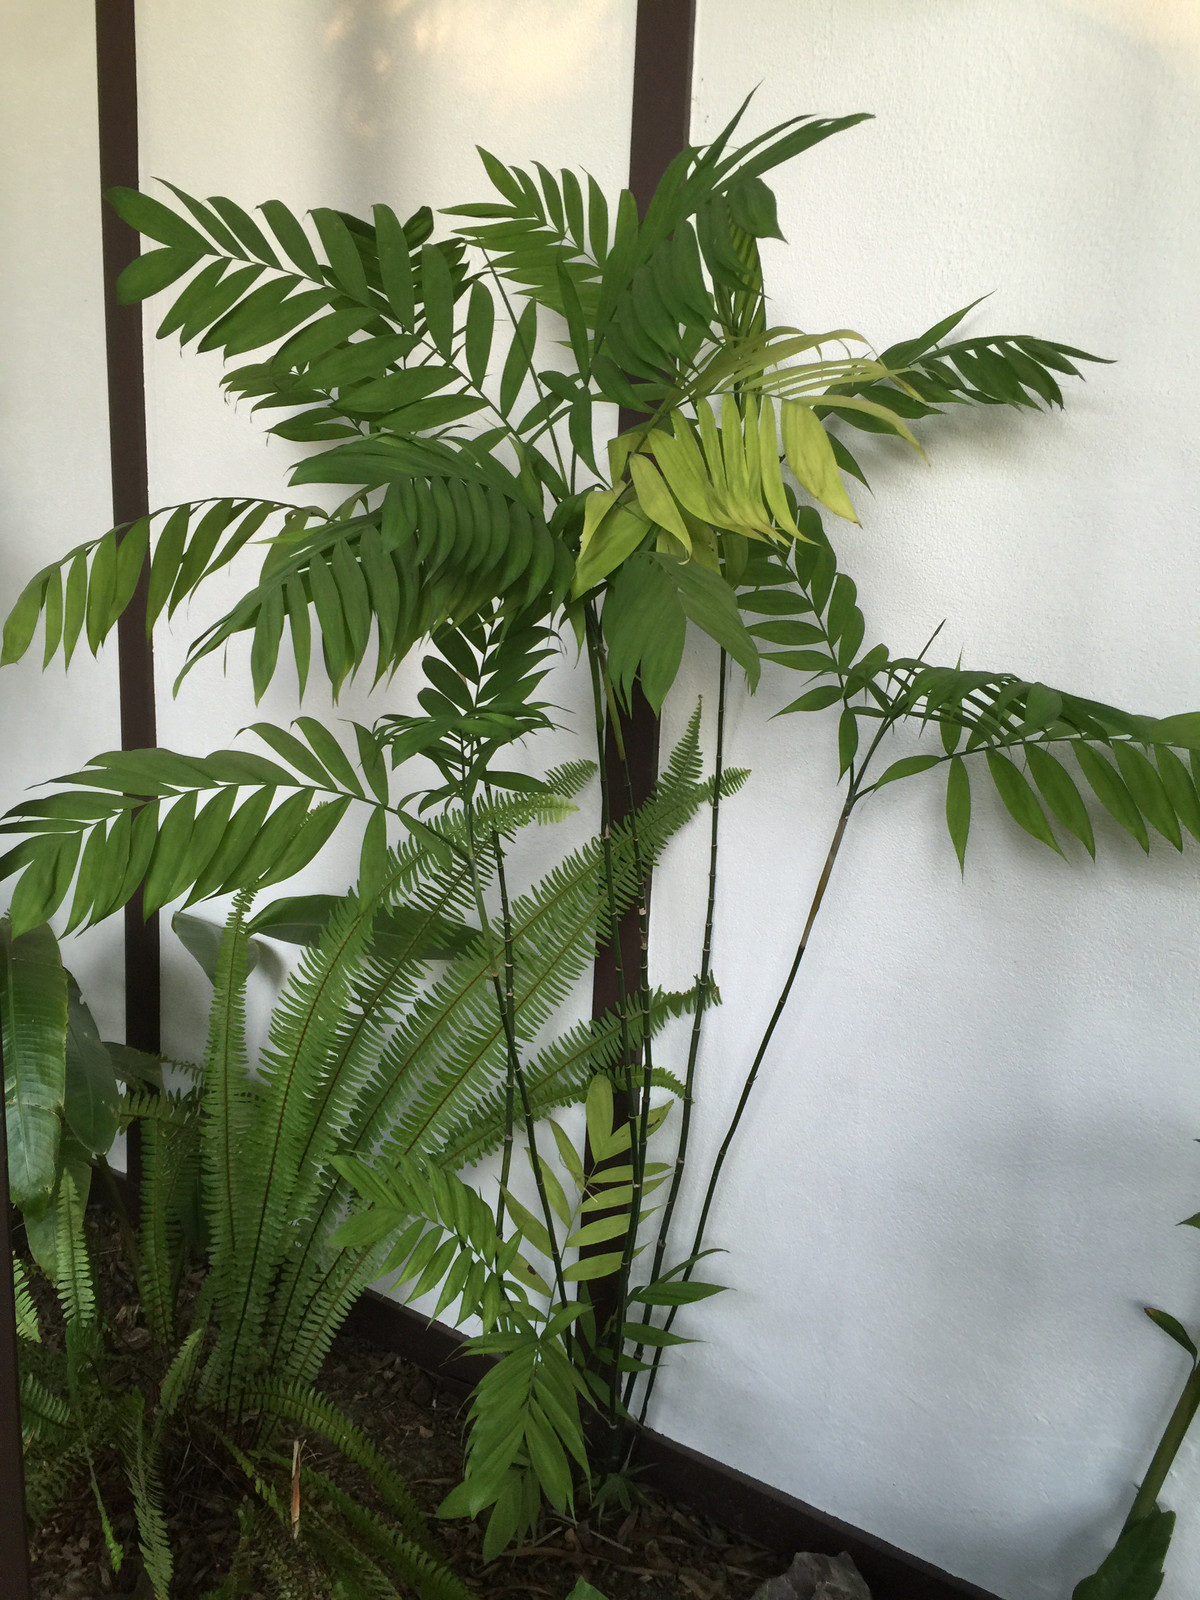 entracing palm tree type house plant. Cold Hardy Bamboo Palm Golden Gate Palms Nursery